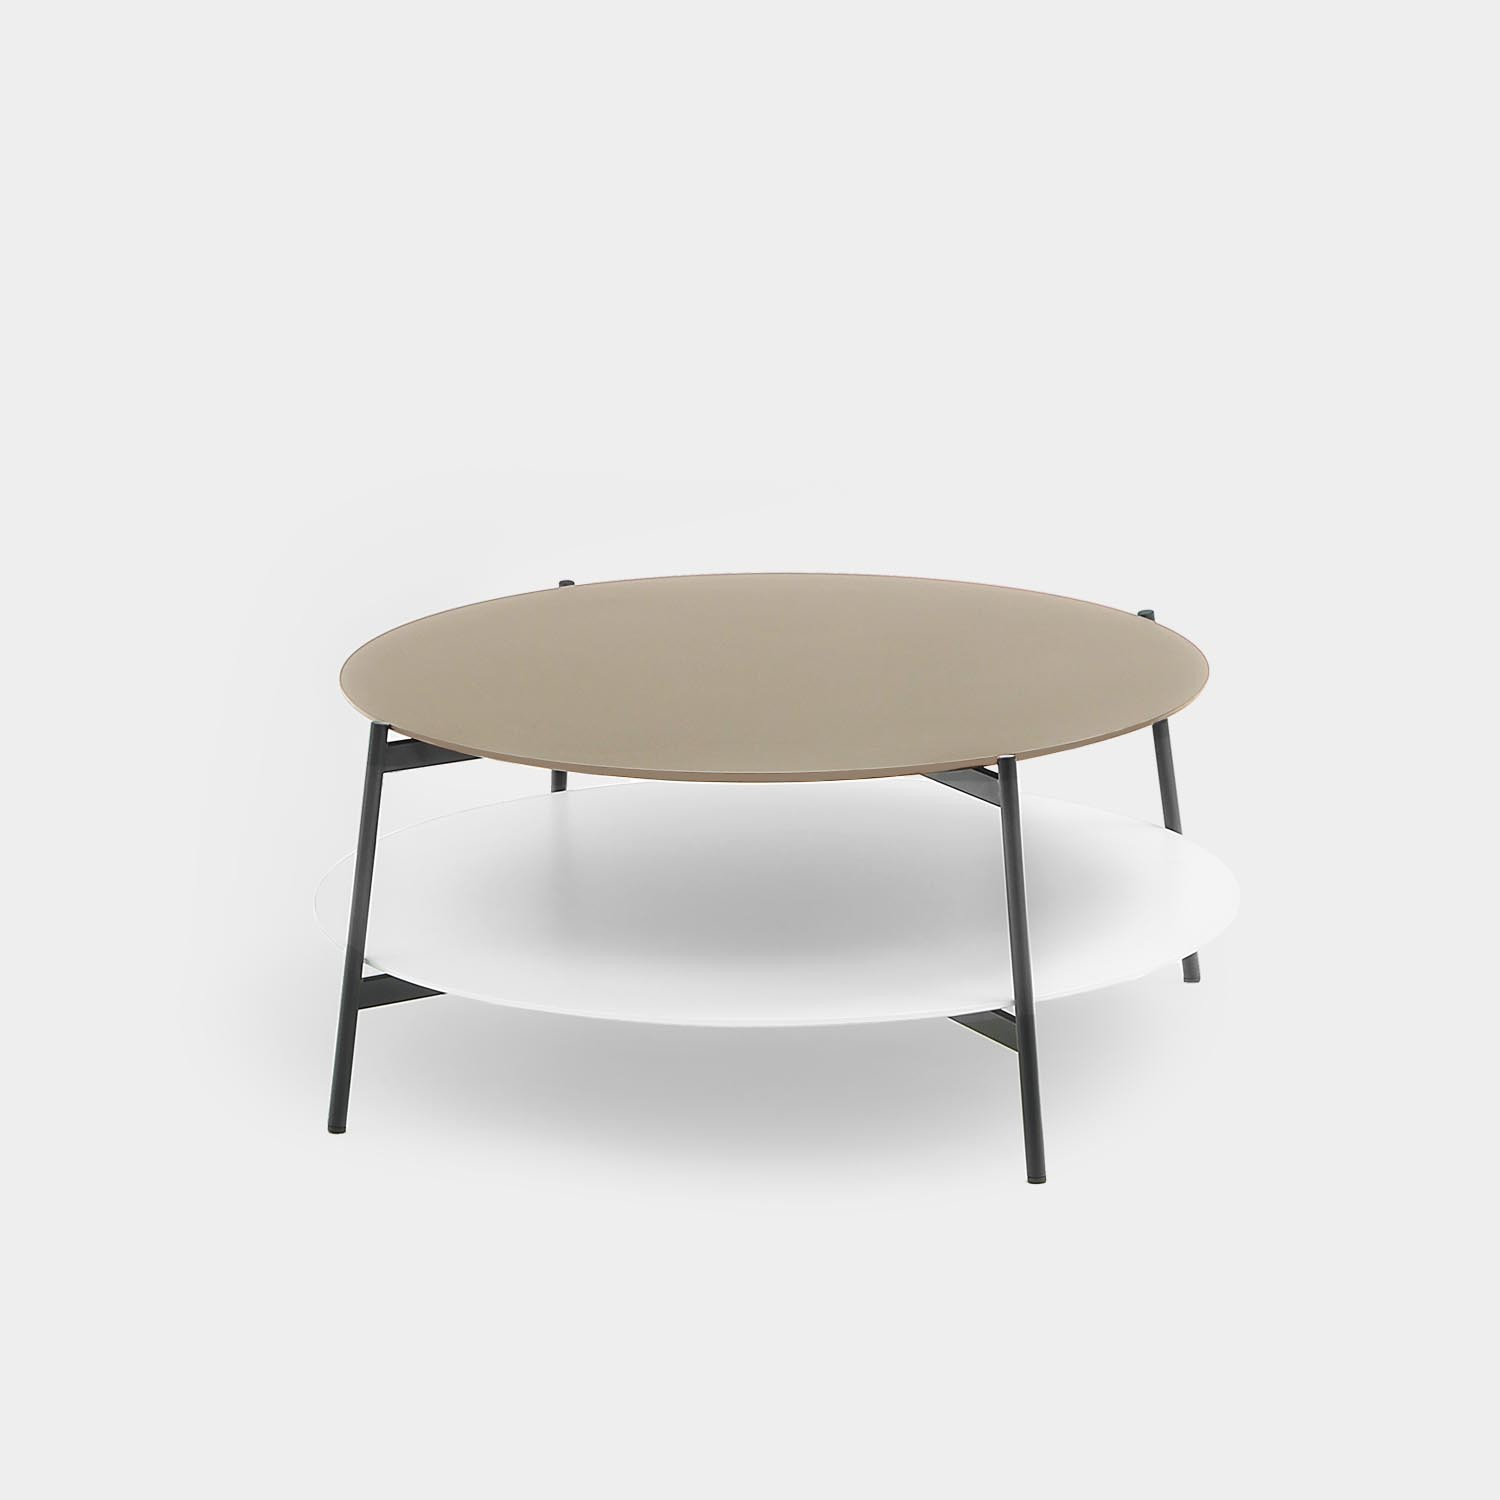 Round Coffee Table SHIKA, Black Base